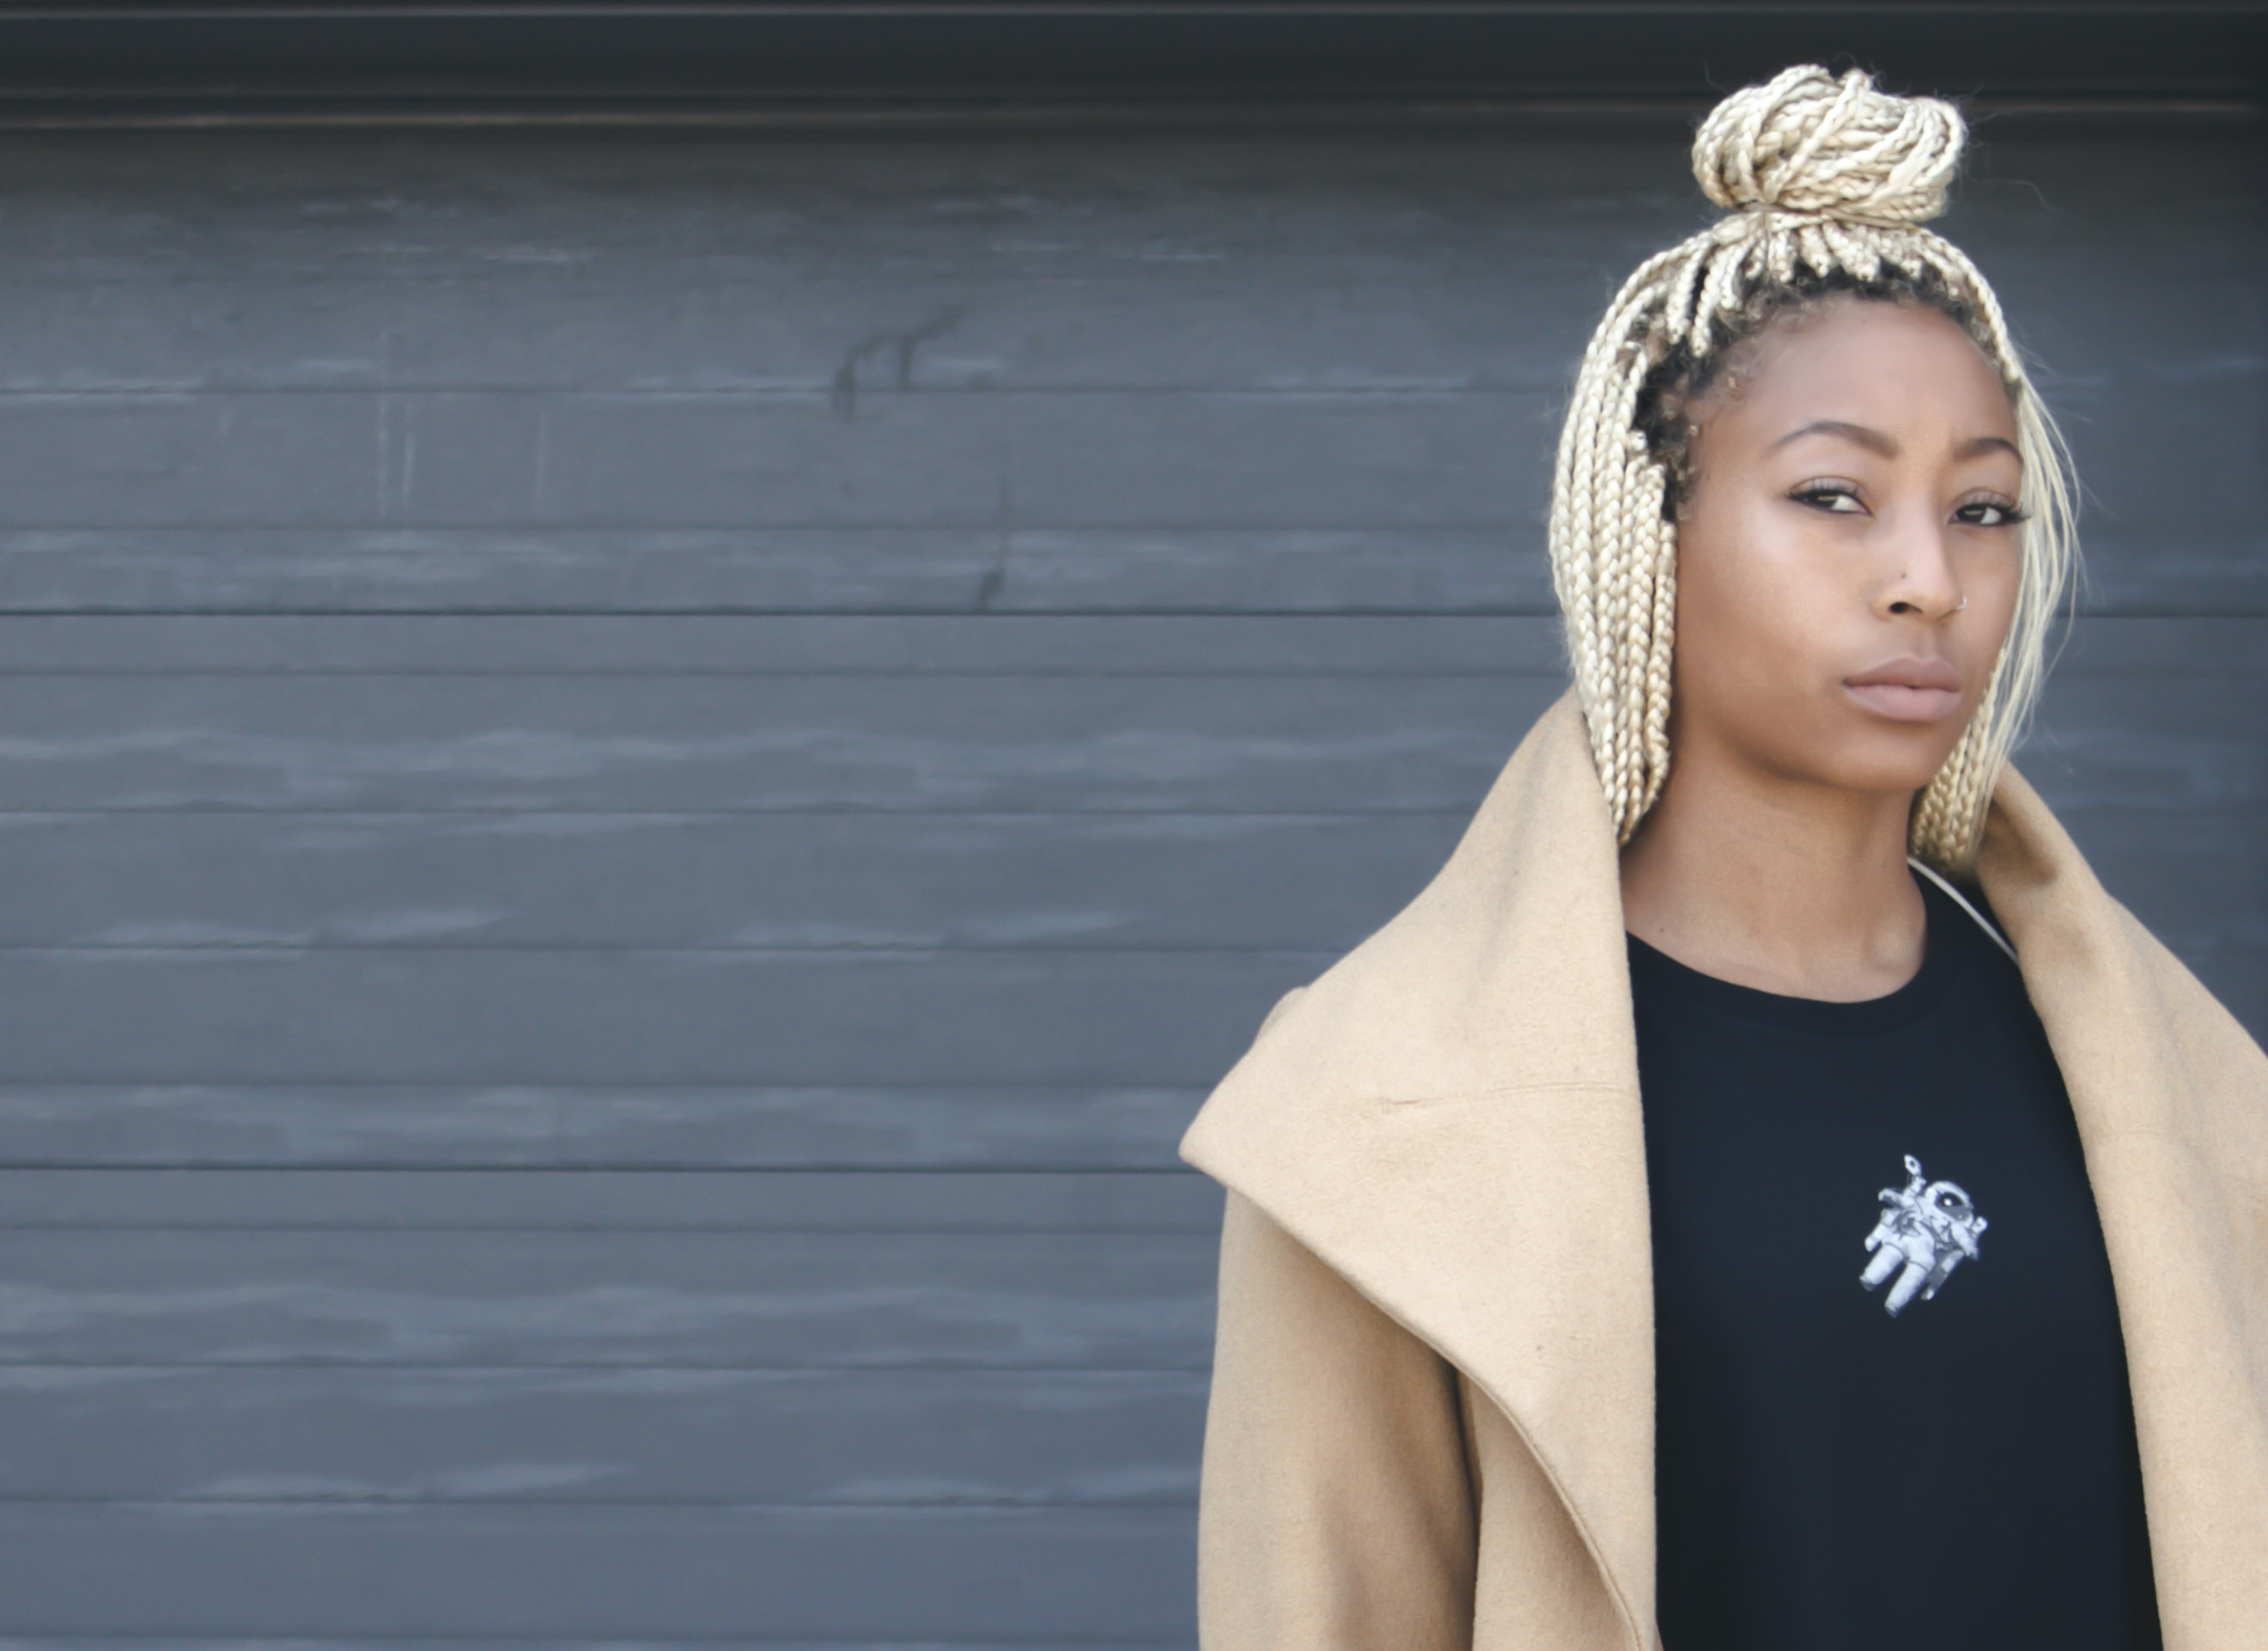 Black woman with white braids, wearing a black t shirt and camel jacket